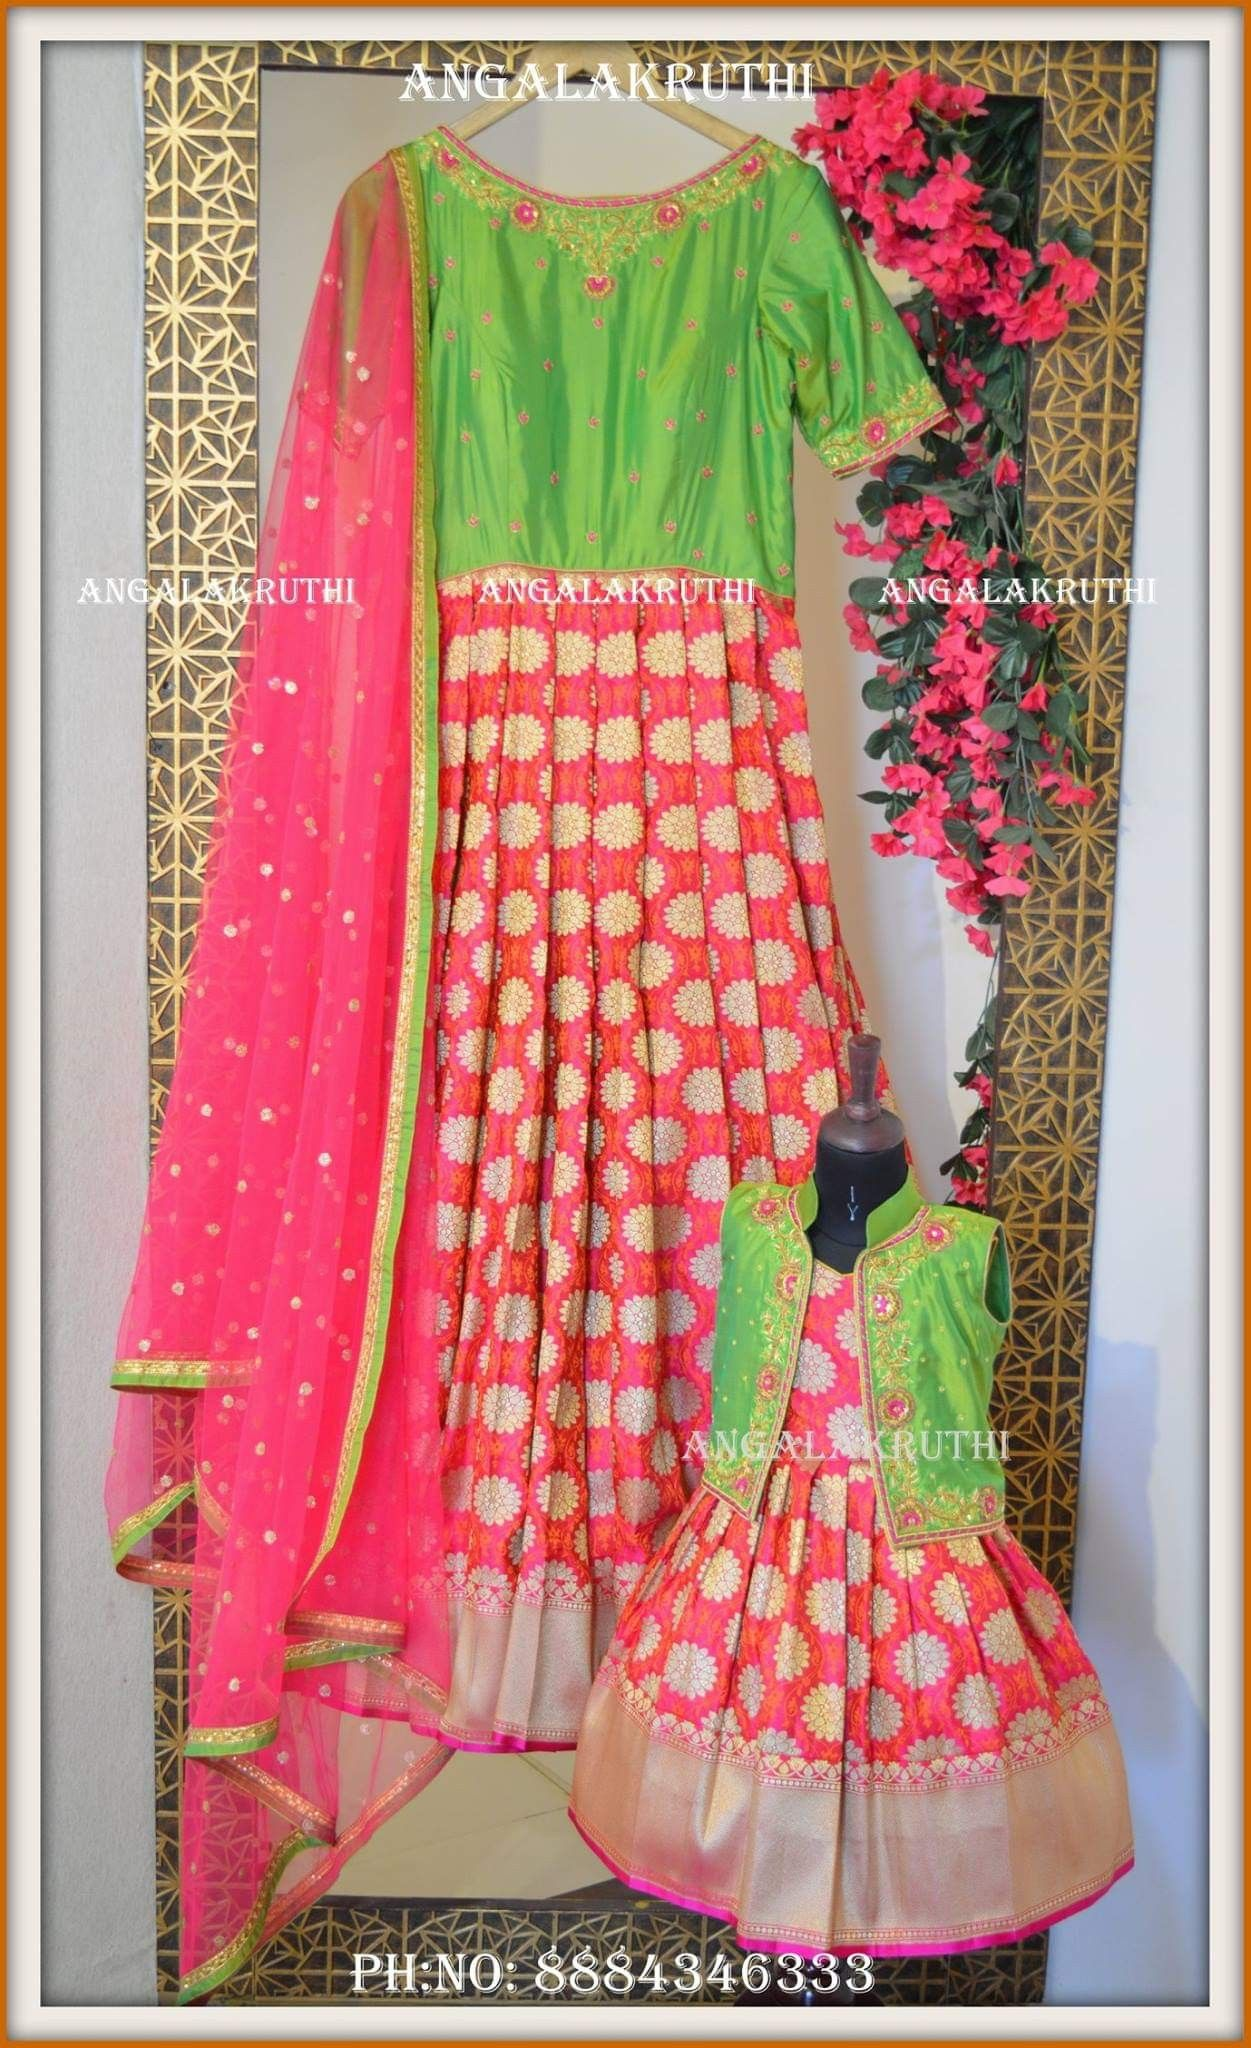 31464c946a Mother and daughter matching dress designs by Angalakruthi Bangalore India  Mom and me dress designs by family matching ethnic wear designer dresses  for ...